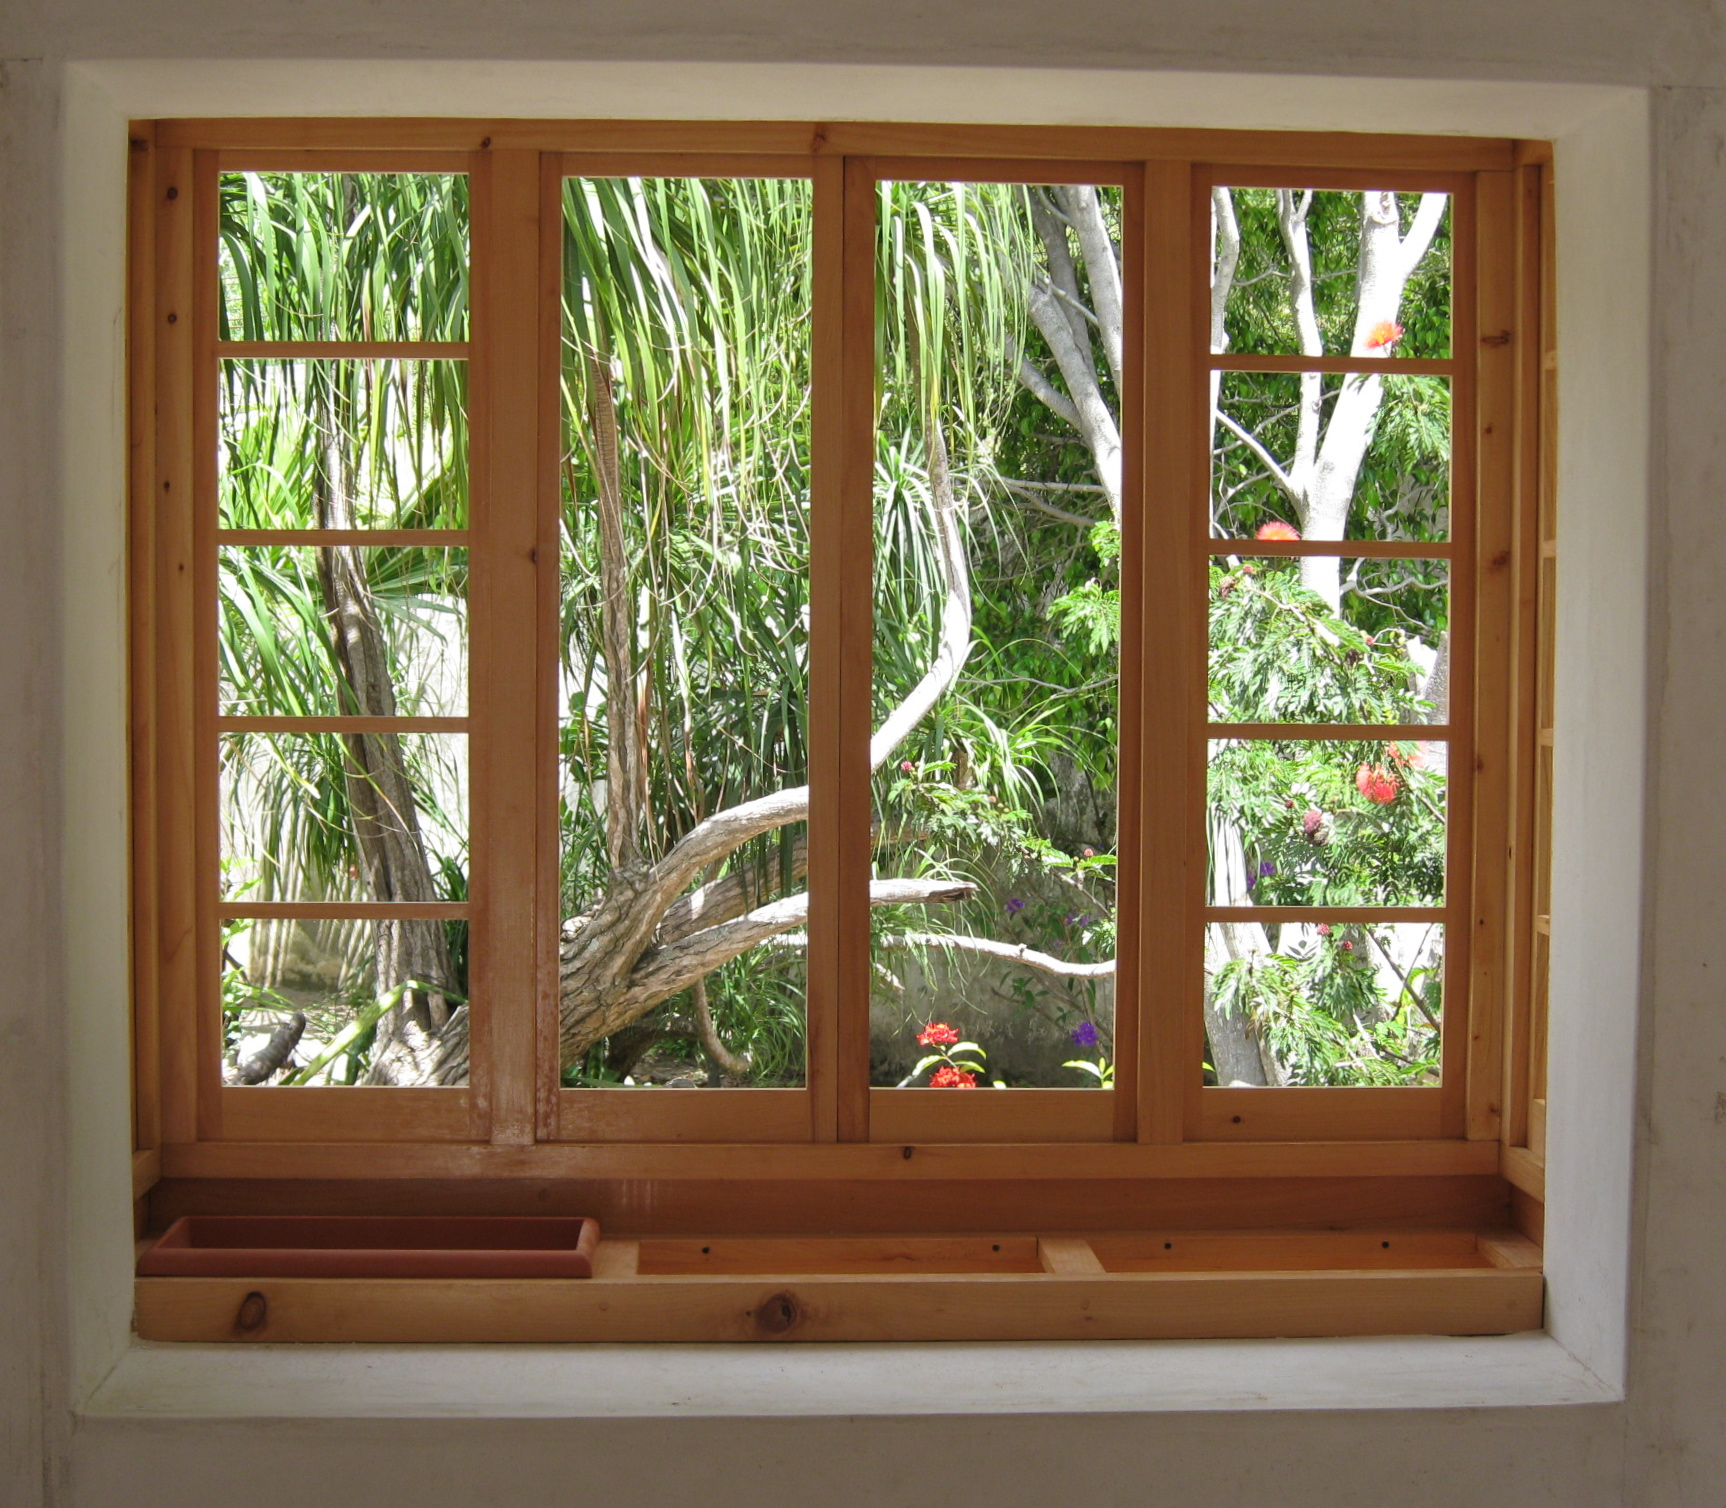 Planter box window interior eschenbach construction co for Interior windows